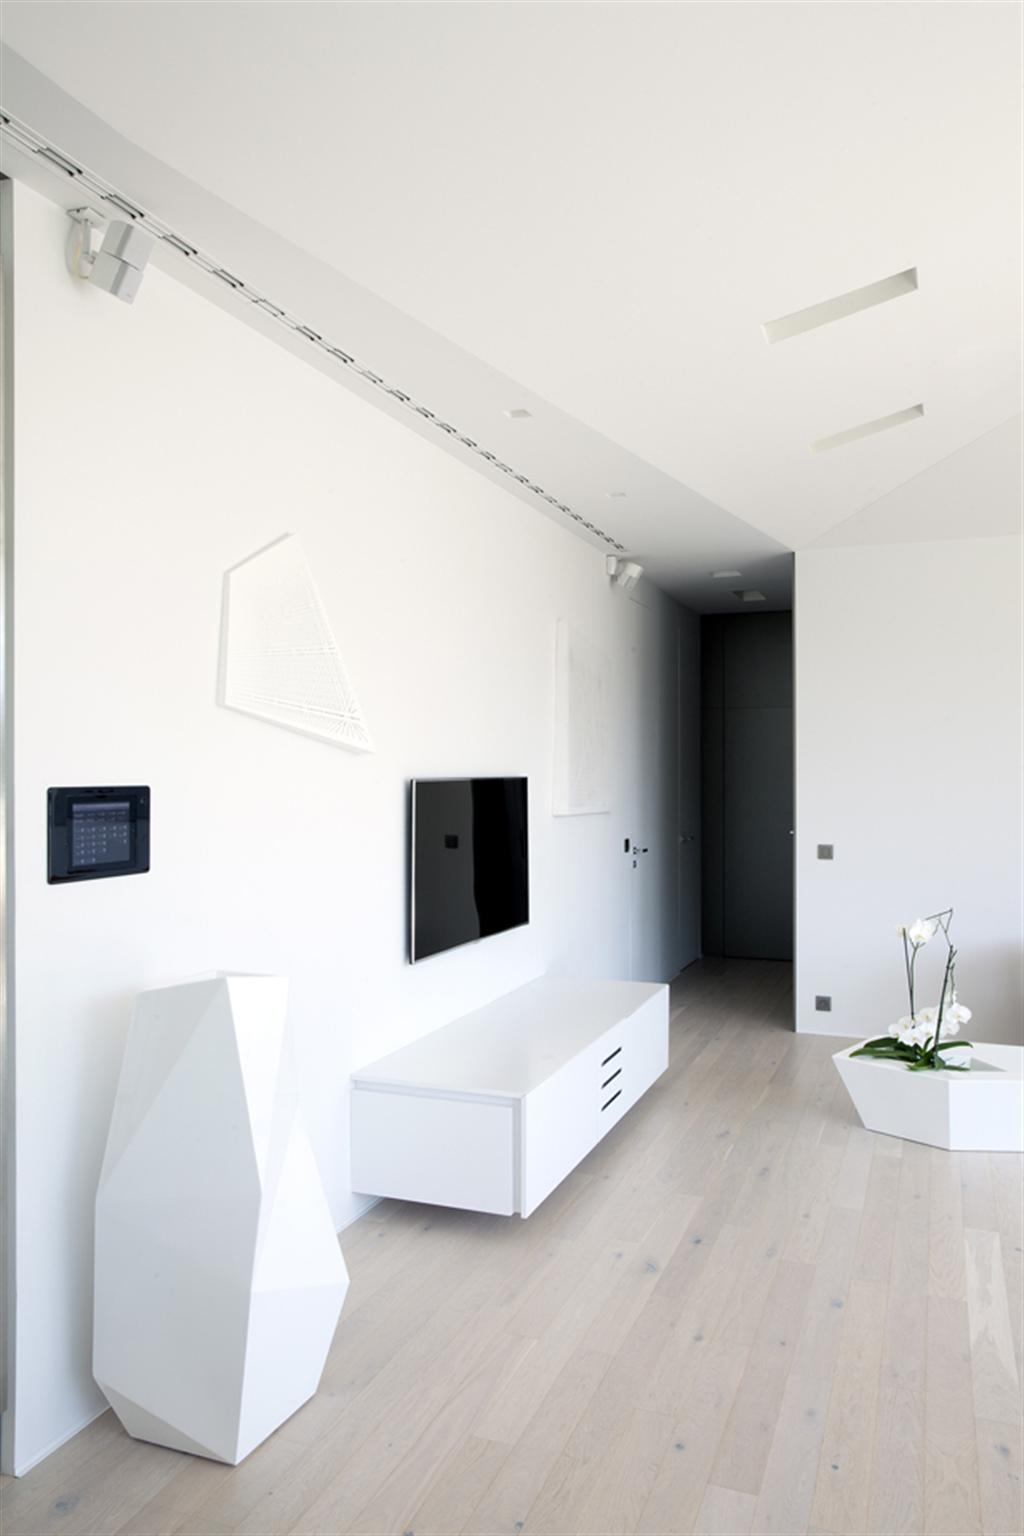 Chill-out and absolute Relaxation: The Spa Home 13